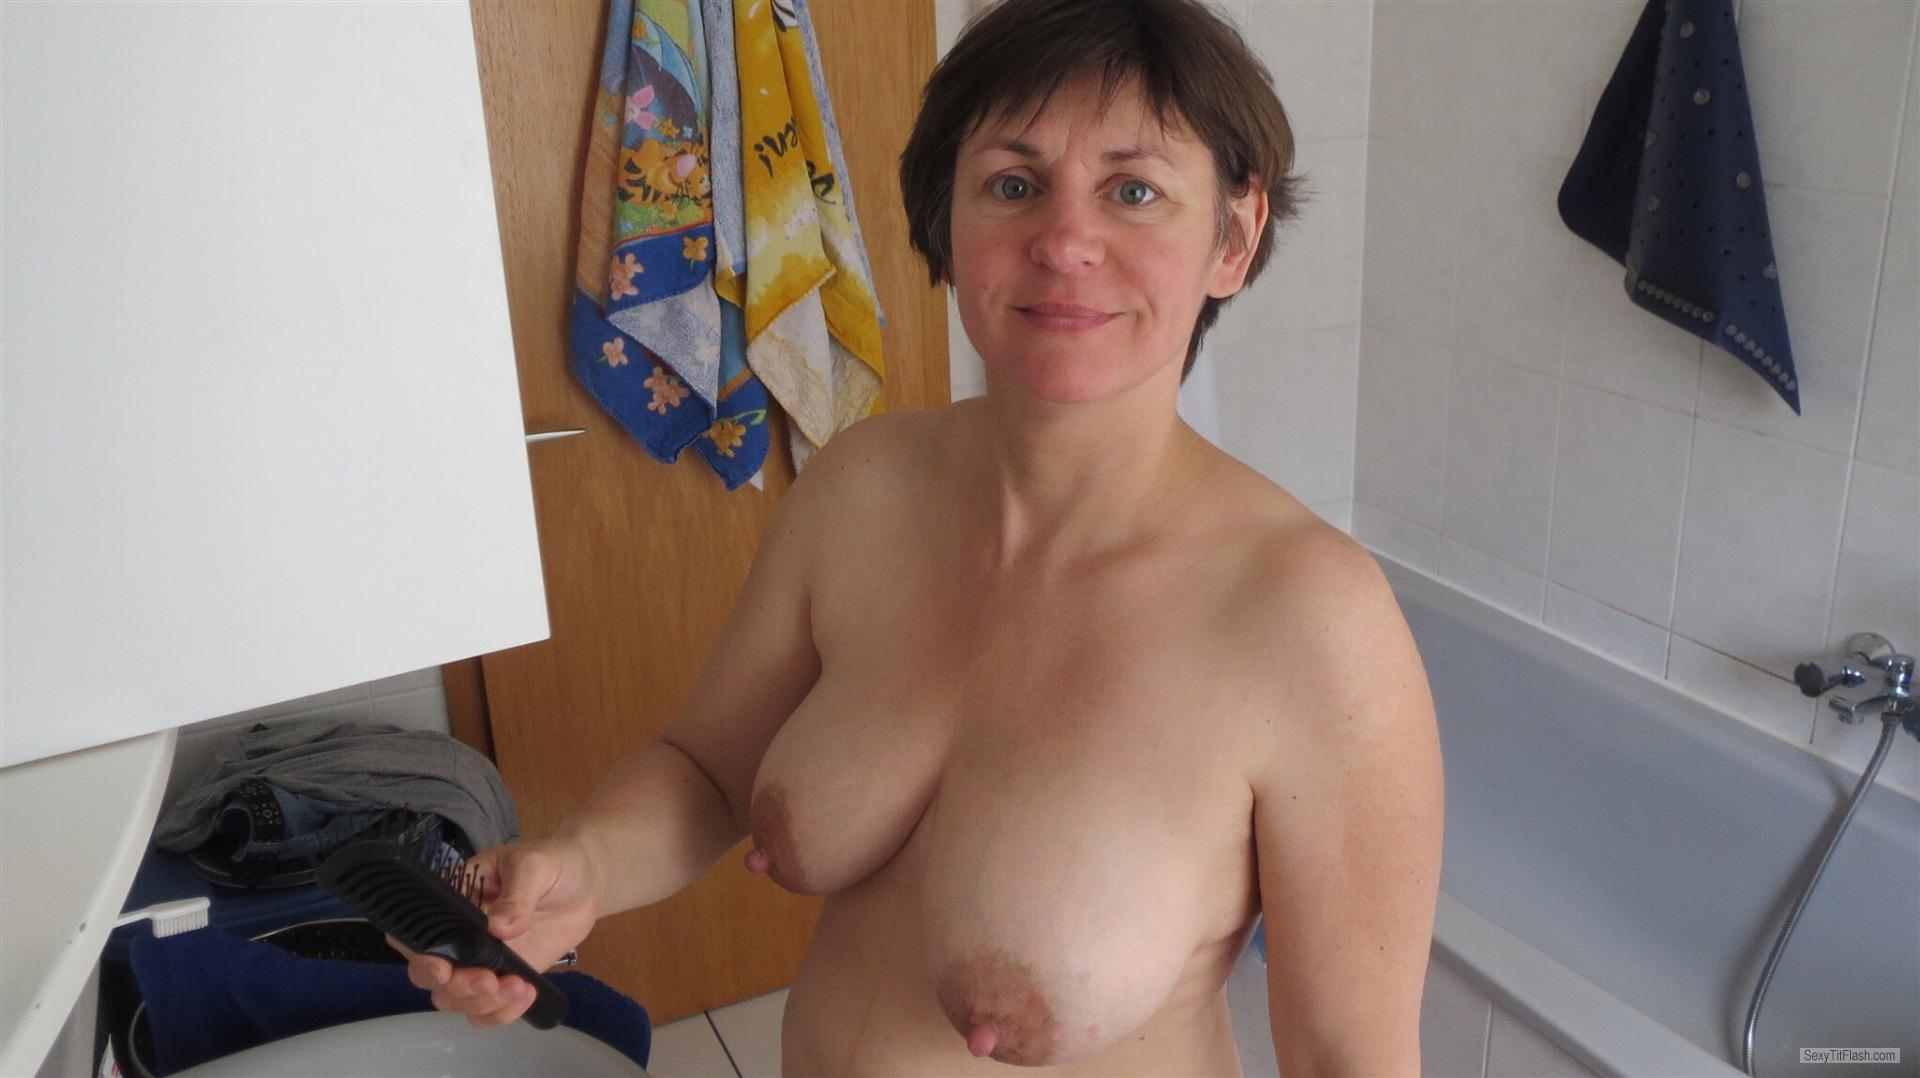 Big Tits Of A Candid Woman Topless Collected